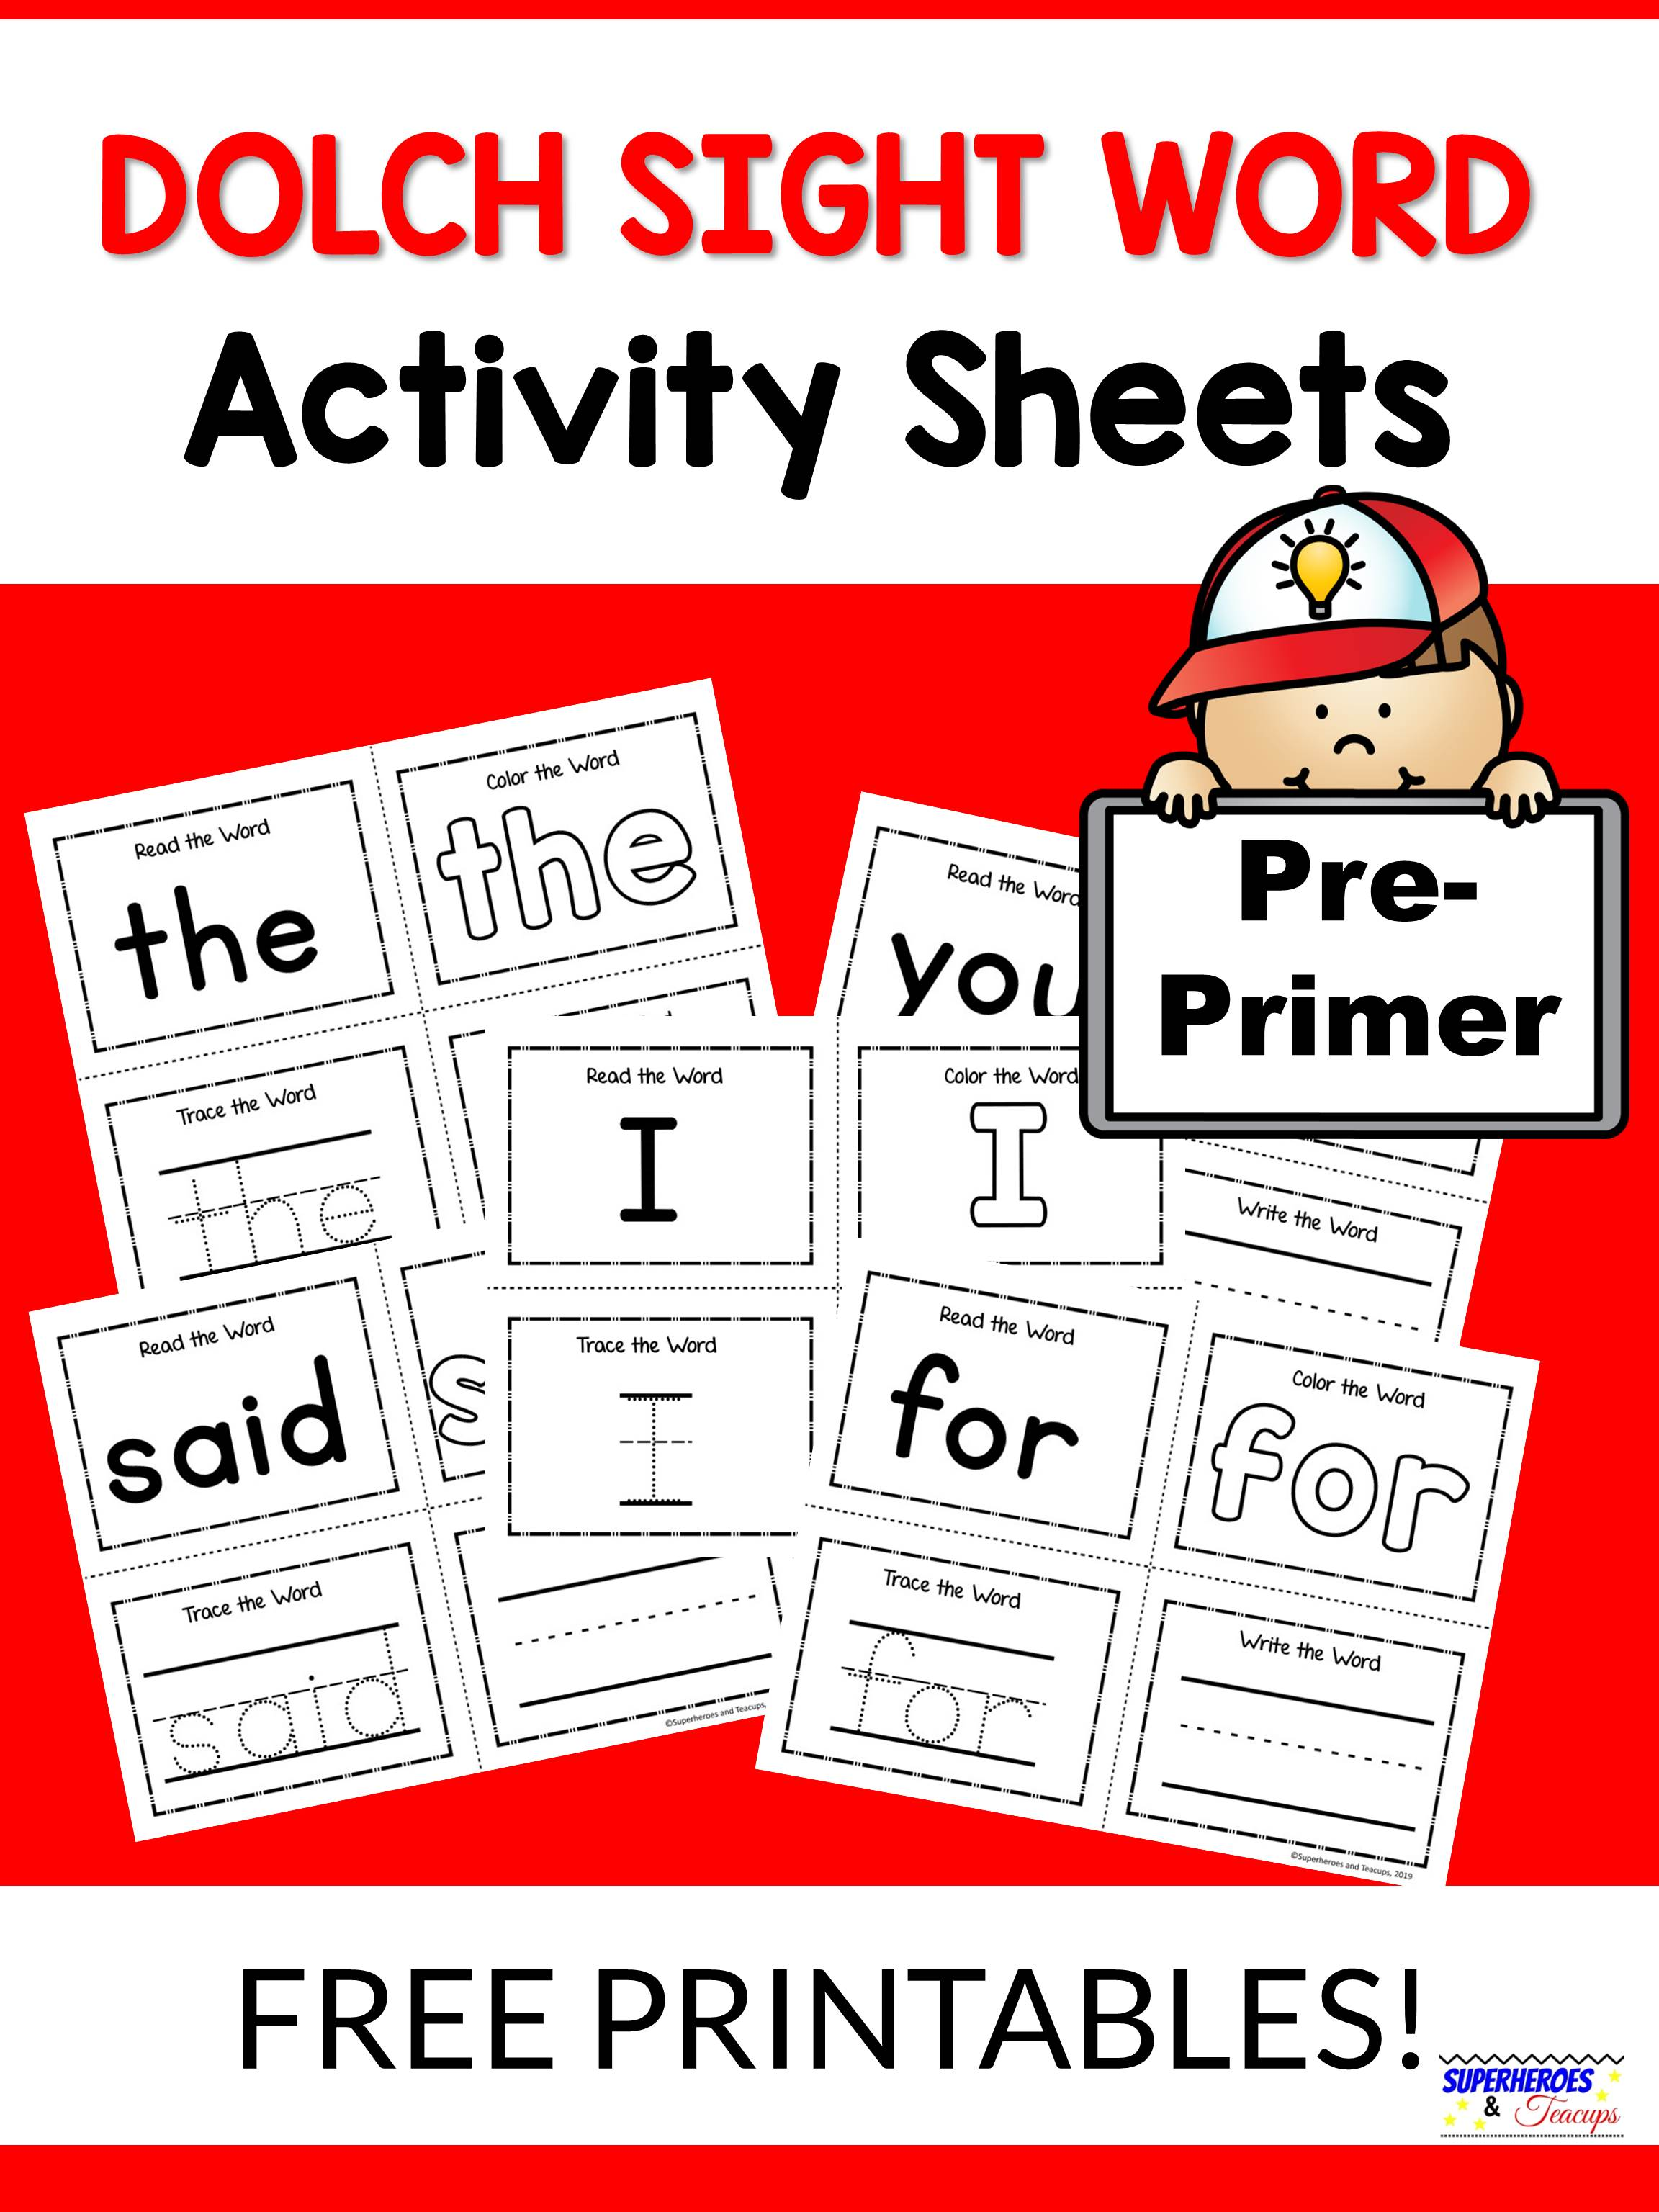 Pre-Primer Dolch Sight Word Activity Sheets | Superheroes ...